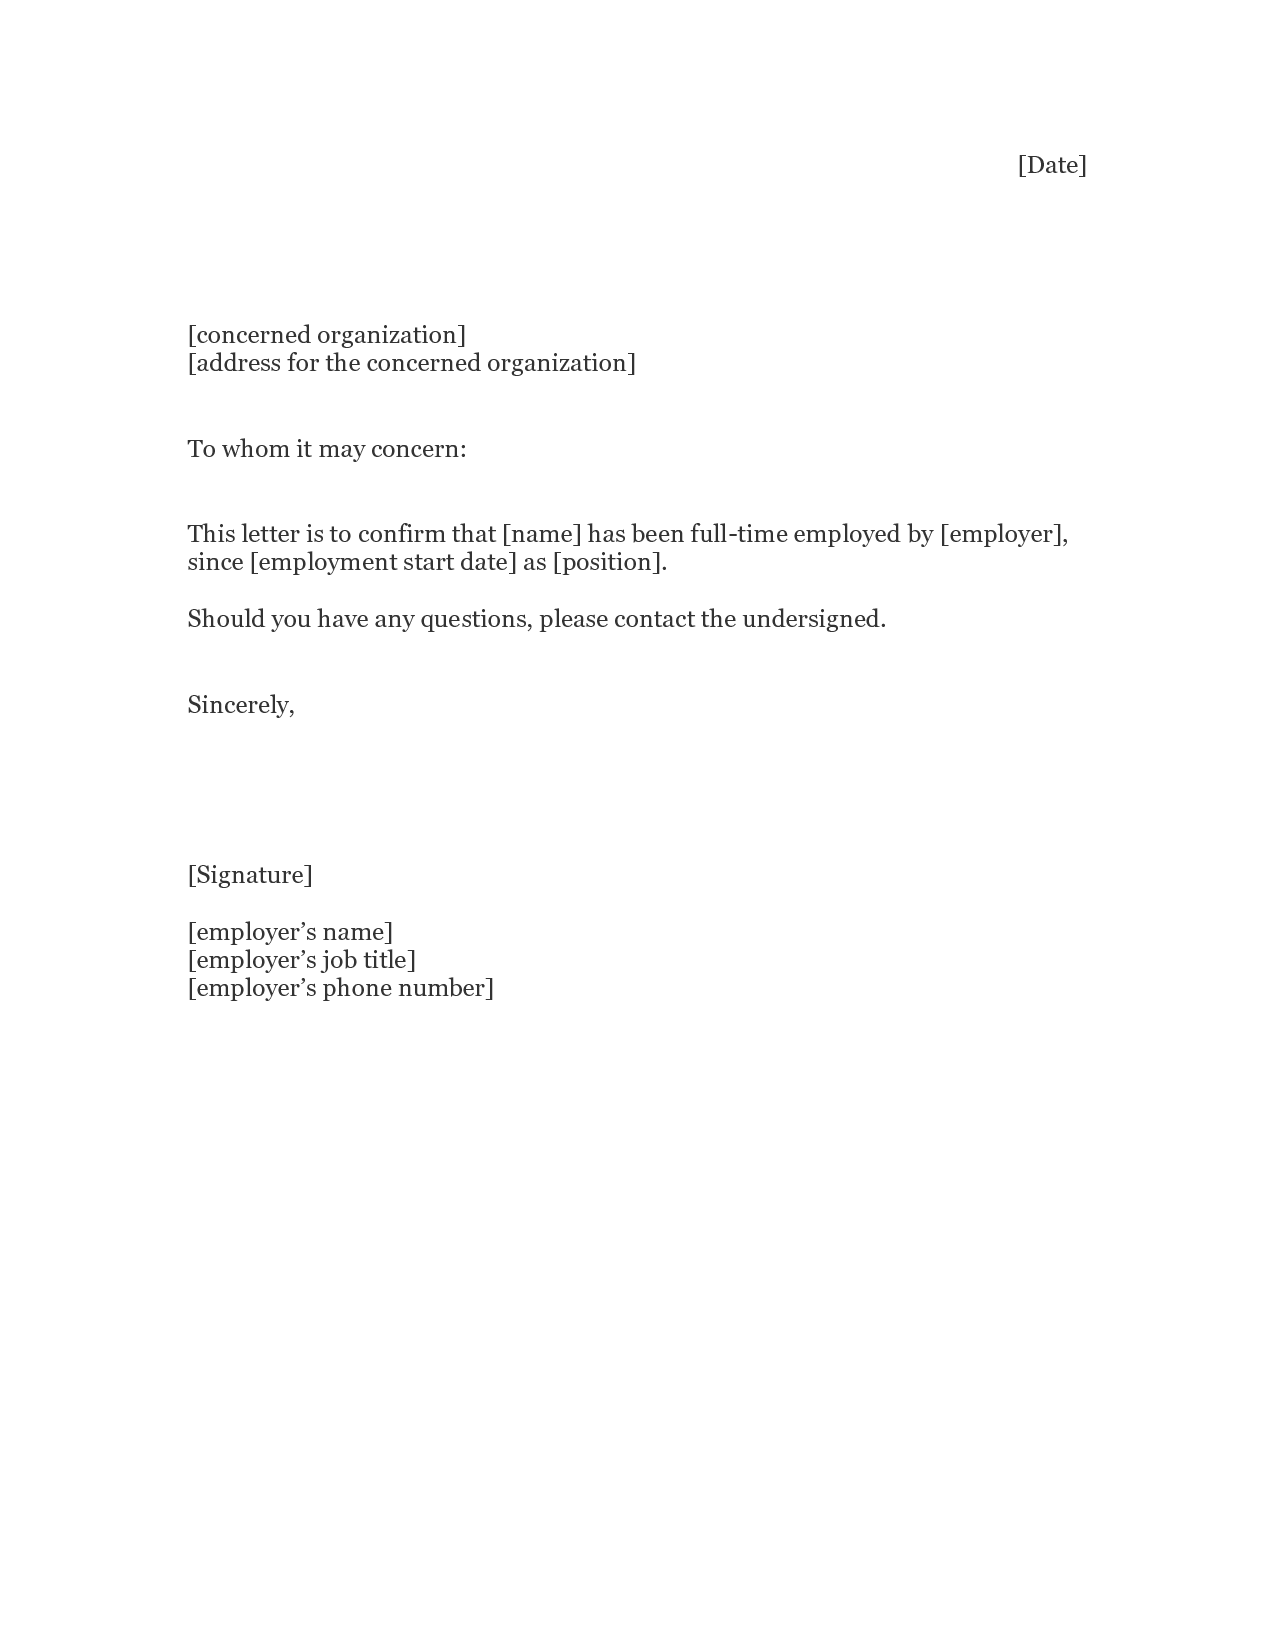 Proof of Employment Letter Sample proof of employment letters – Sample of Proof of Employment